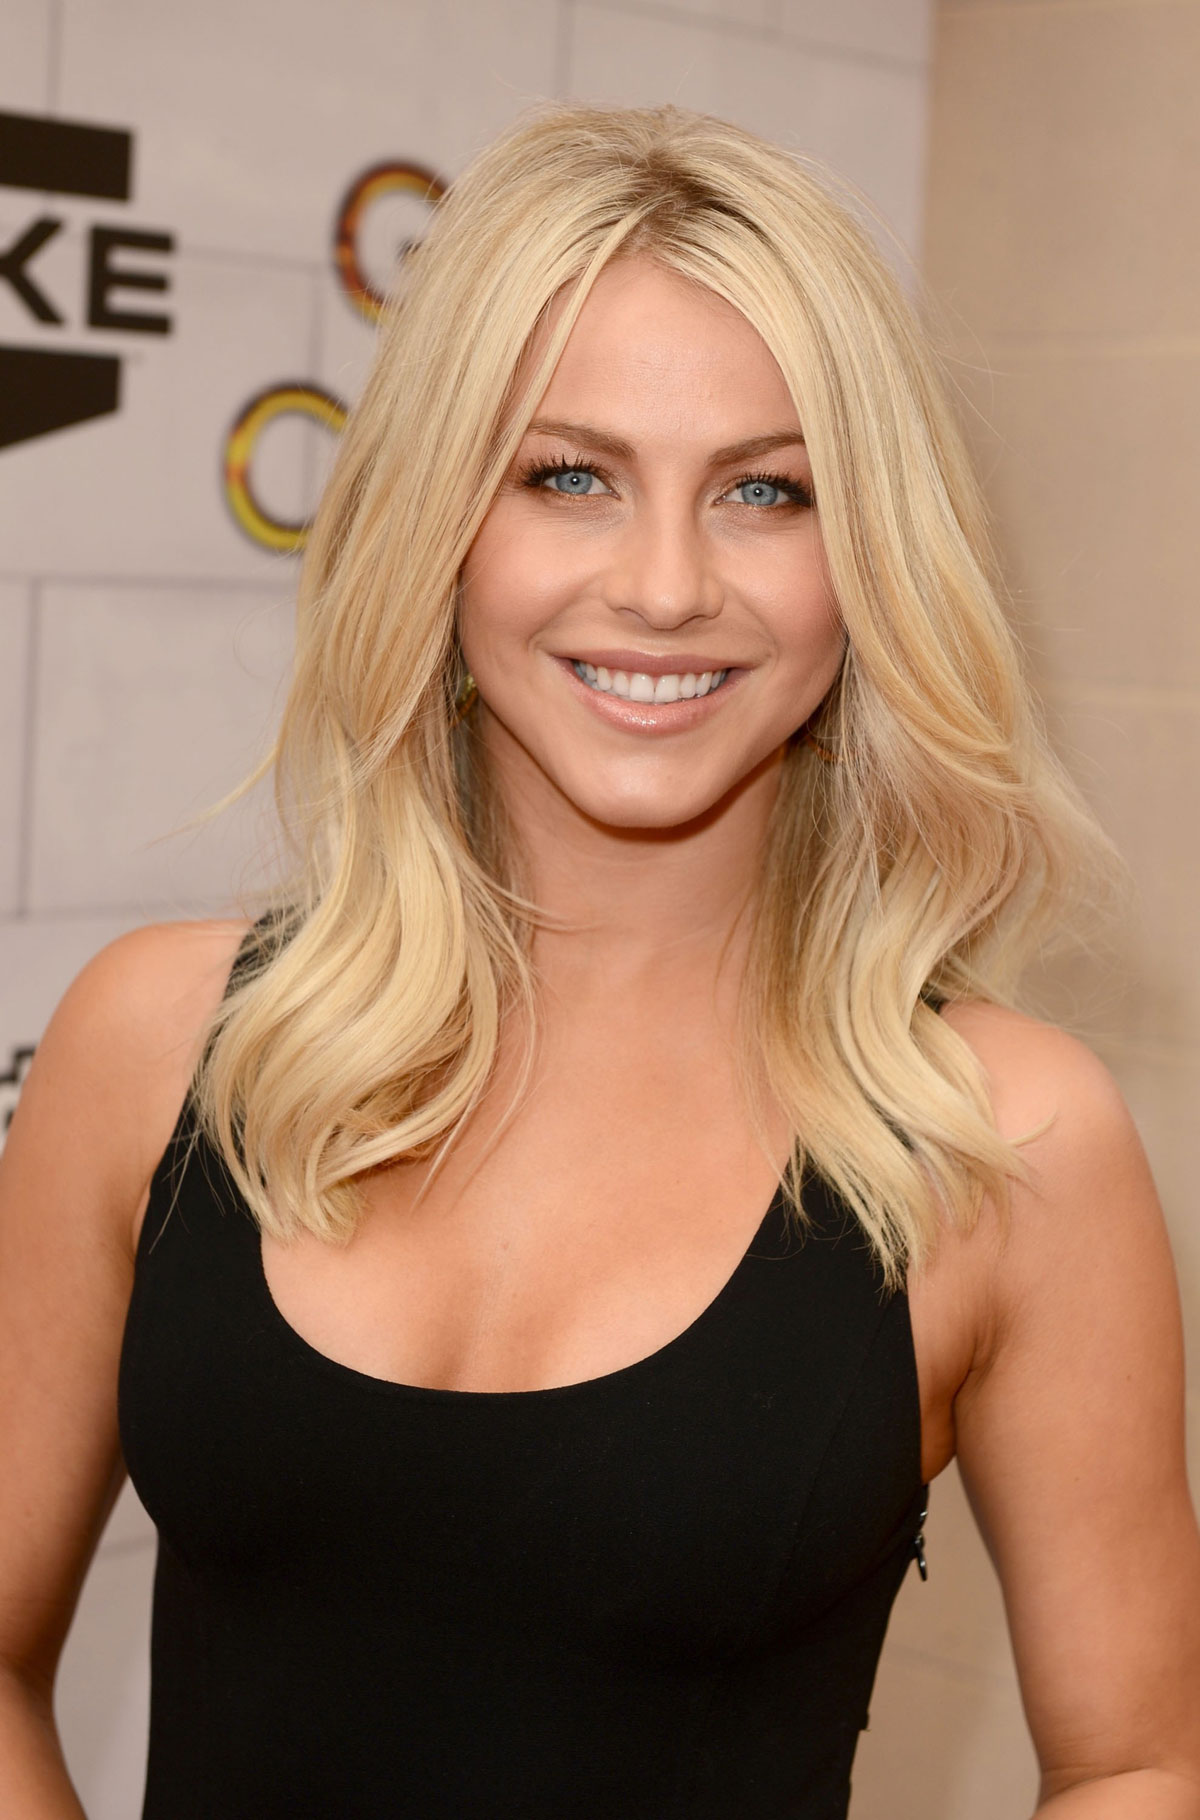 julianne hough at spike tvs 6th annual guys choice awards. Black Bedroom Furniture Sets. Home Design Ideas